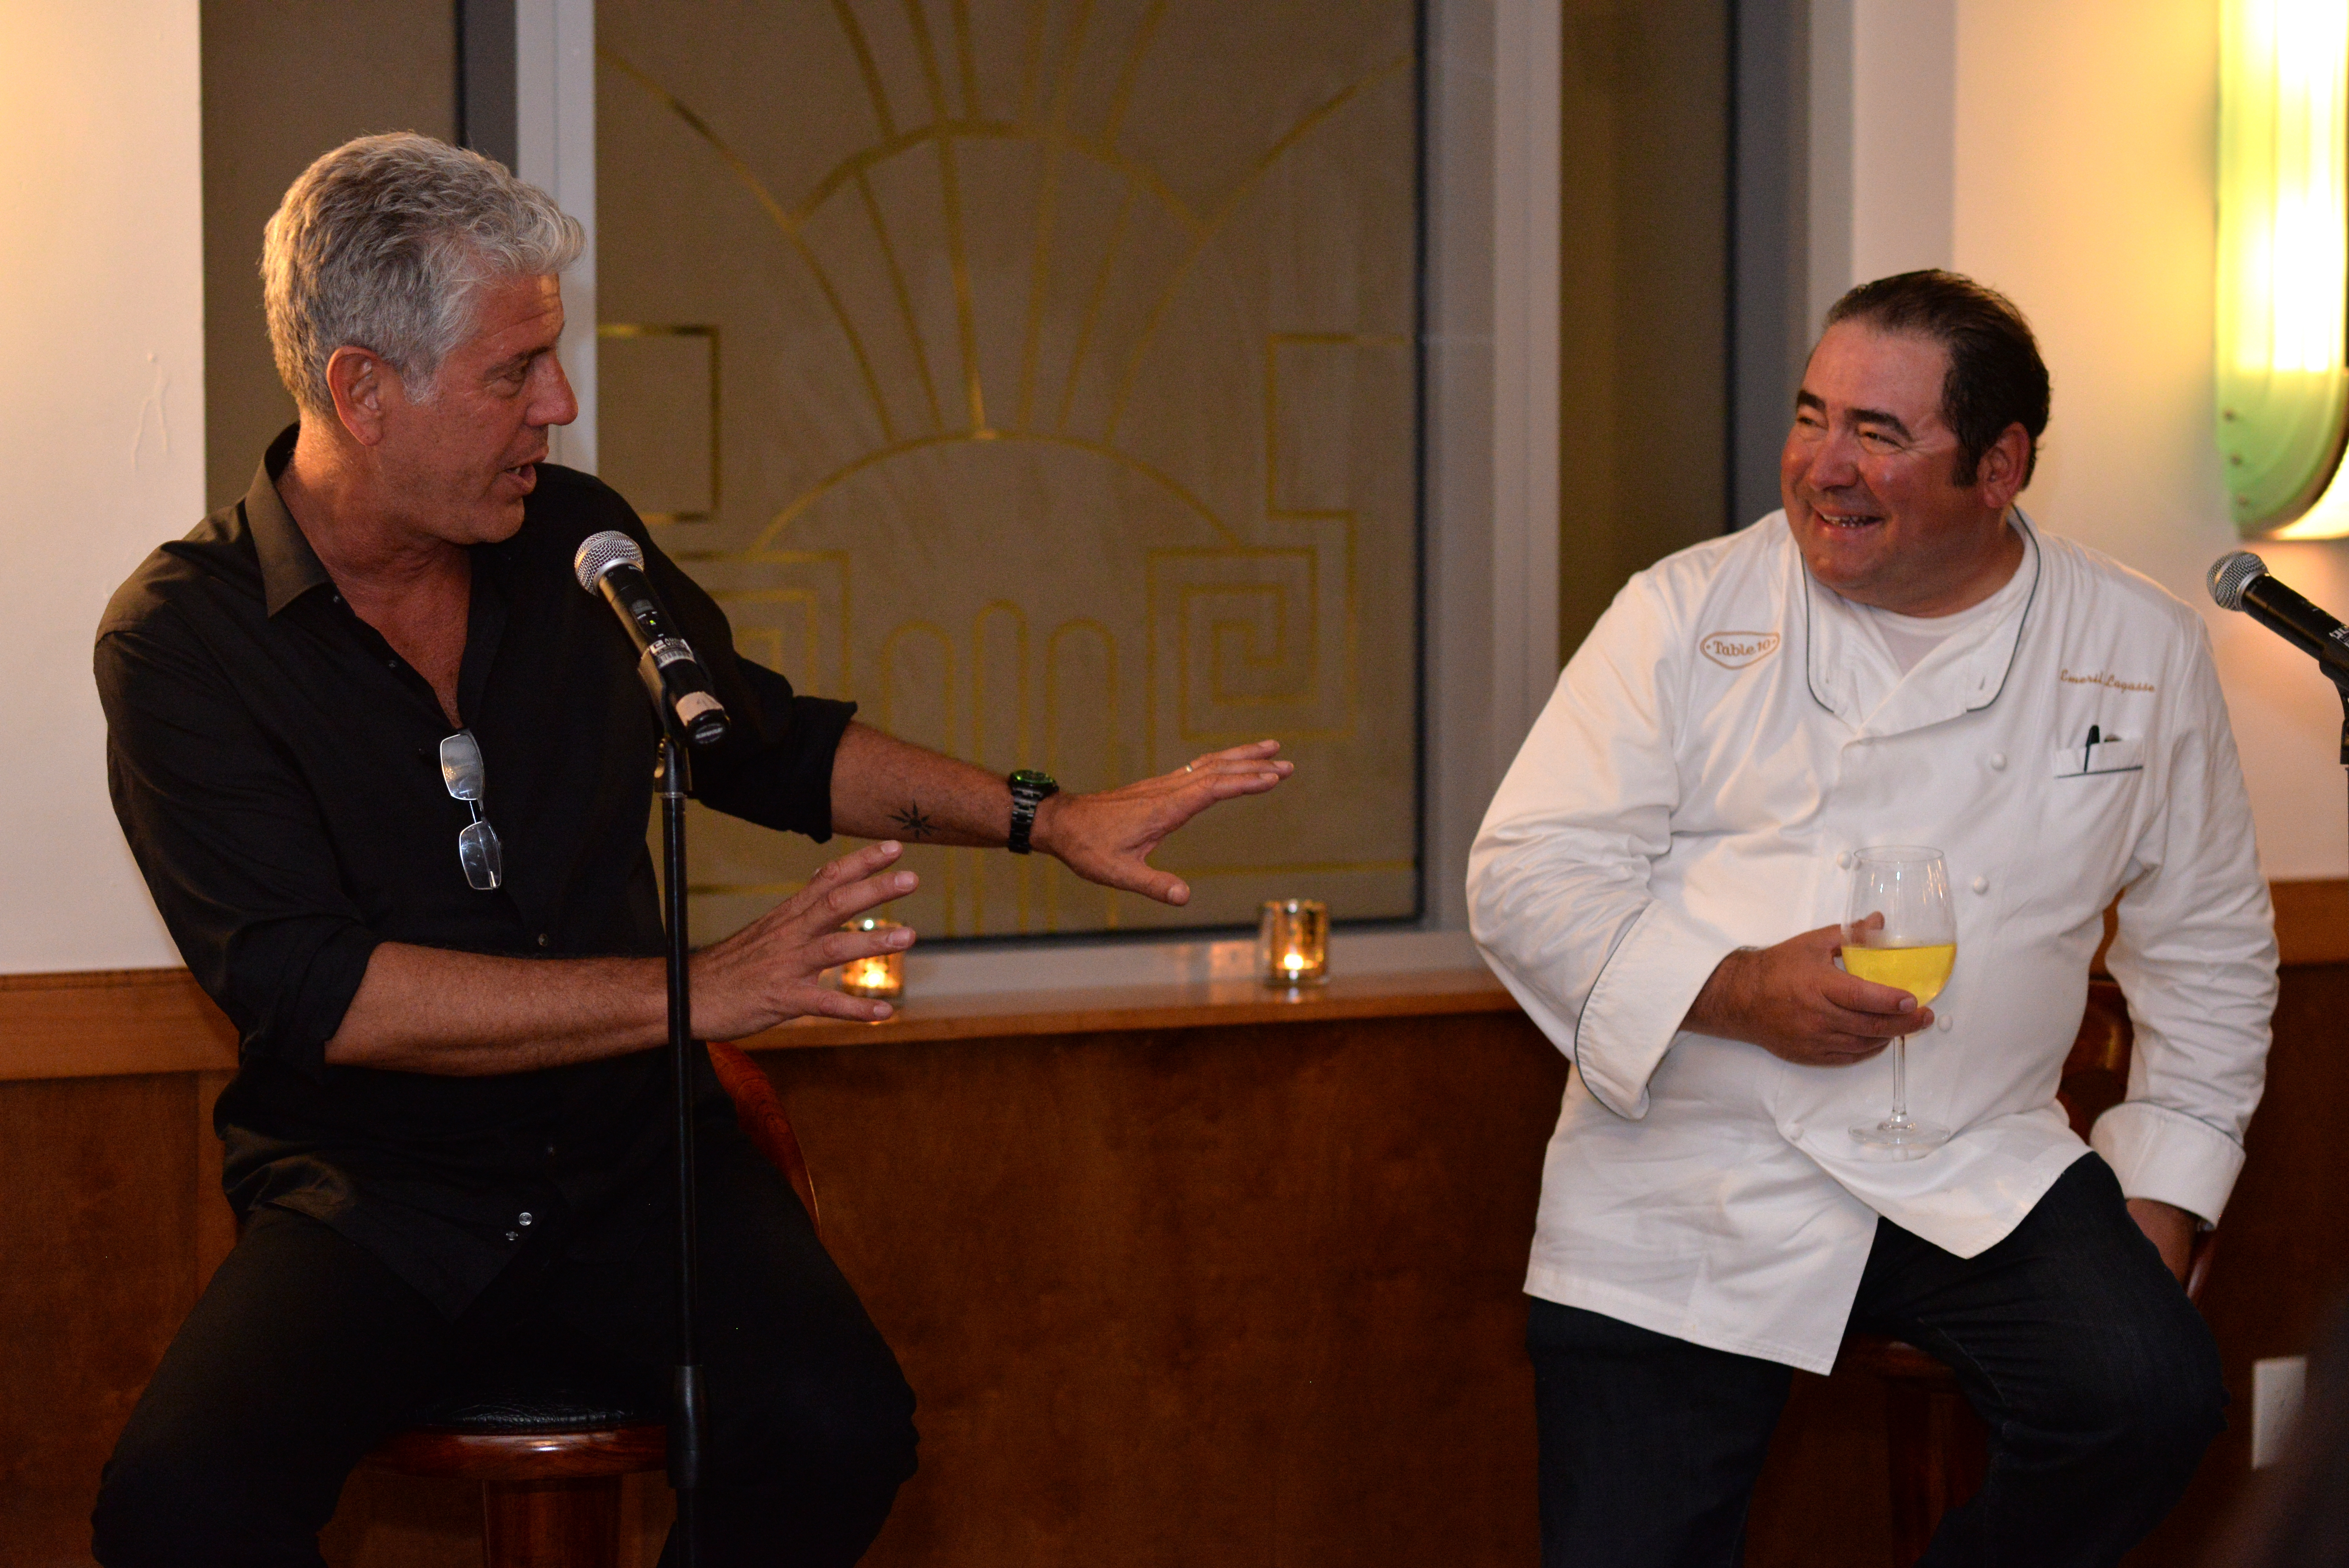 Anthony Bourdain and Emeril Lagasse speak at the Food Network South Beach Wine & Food Festival in February 2014